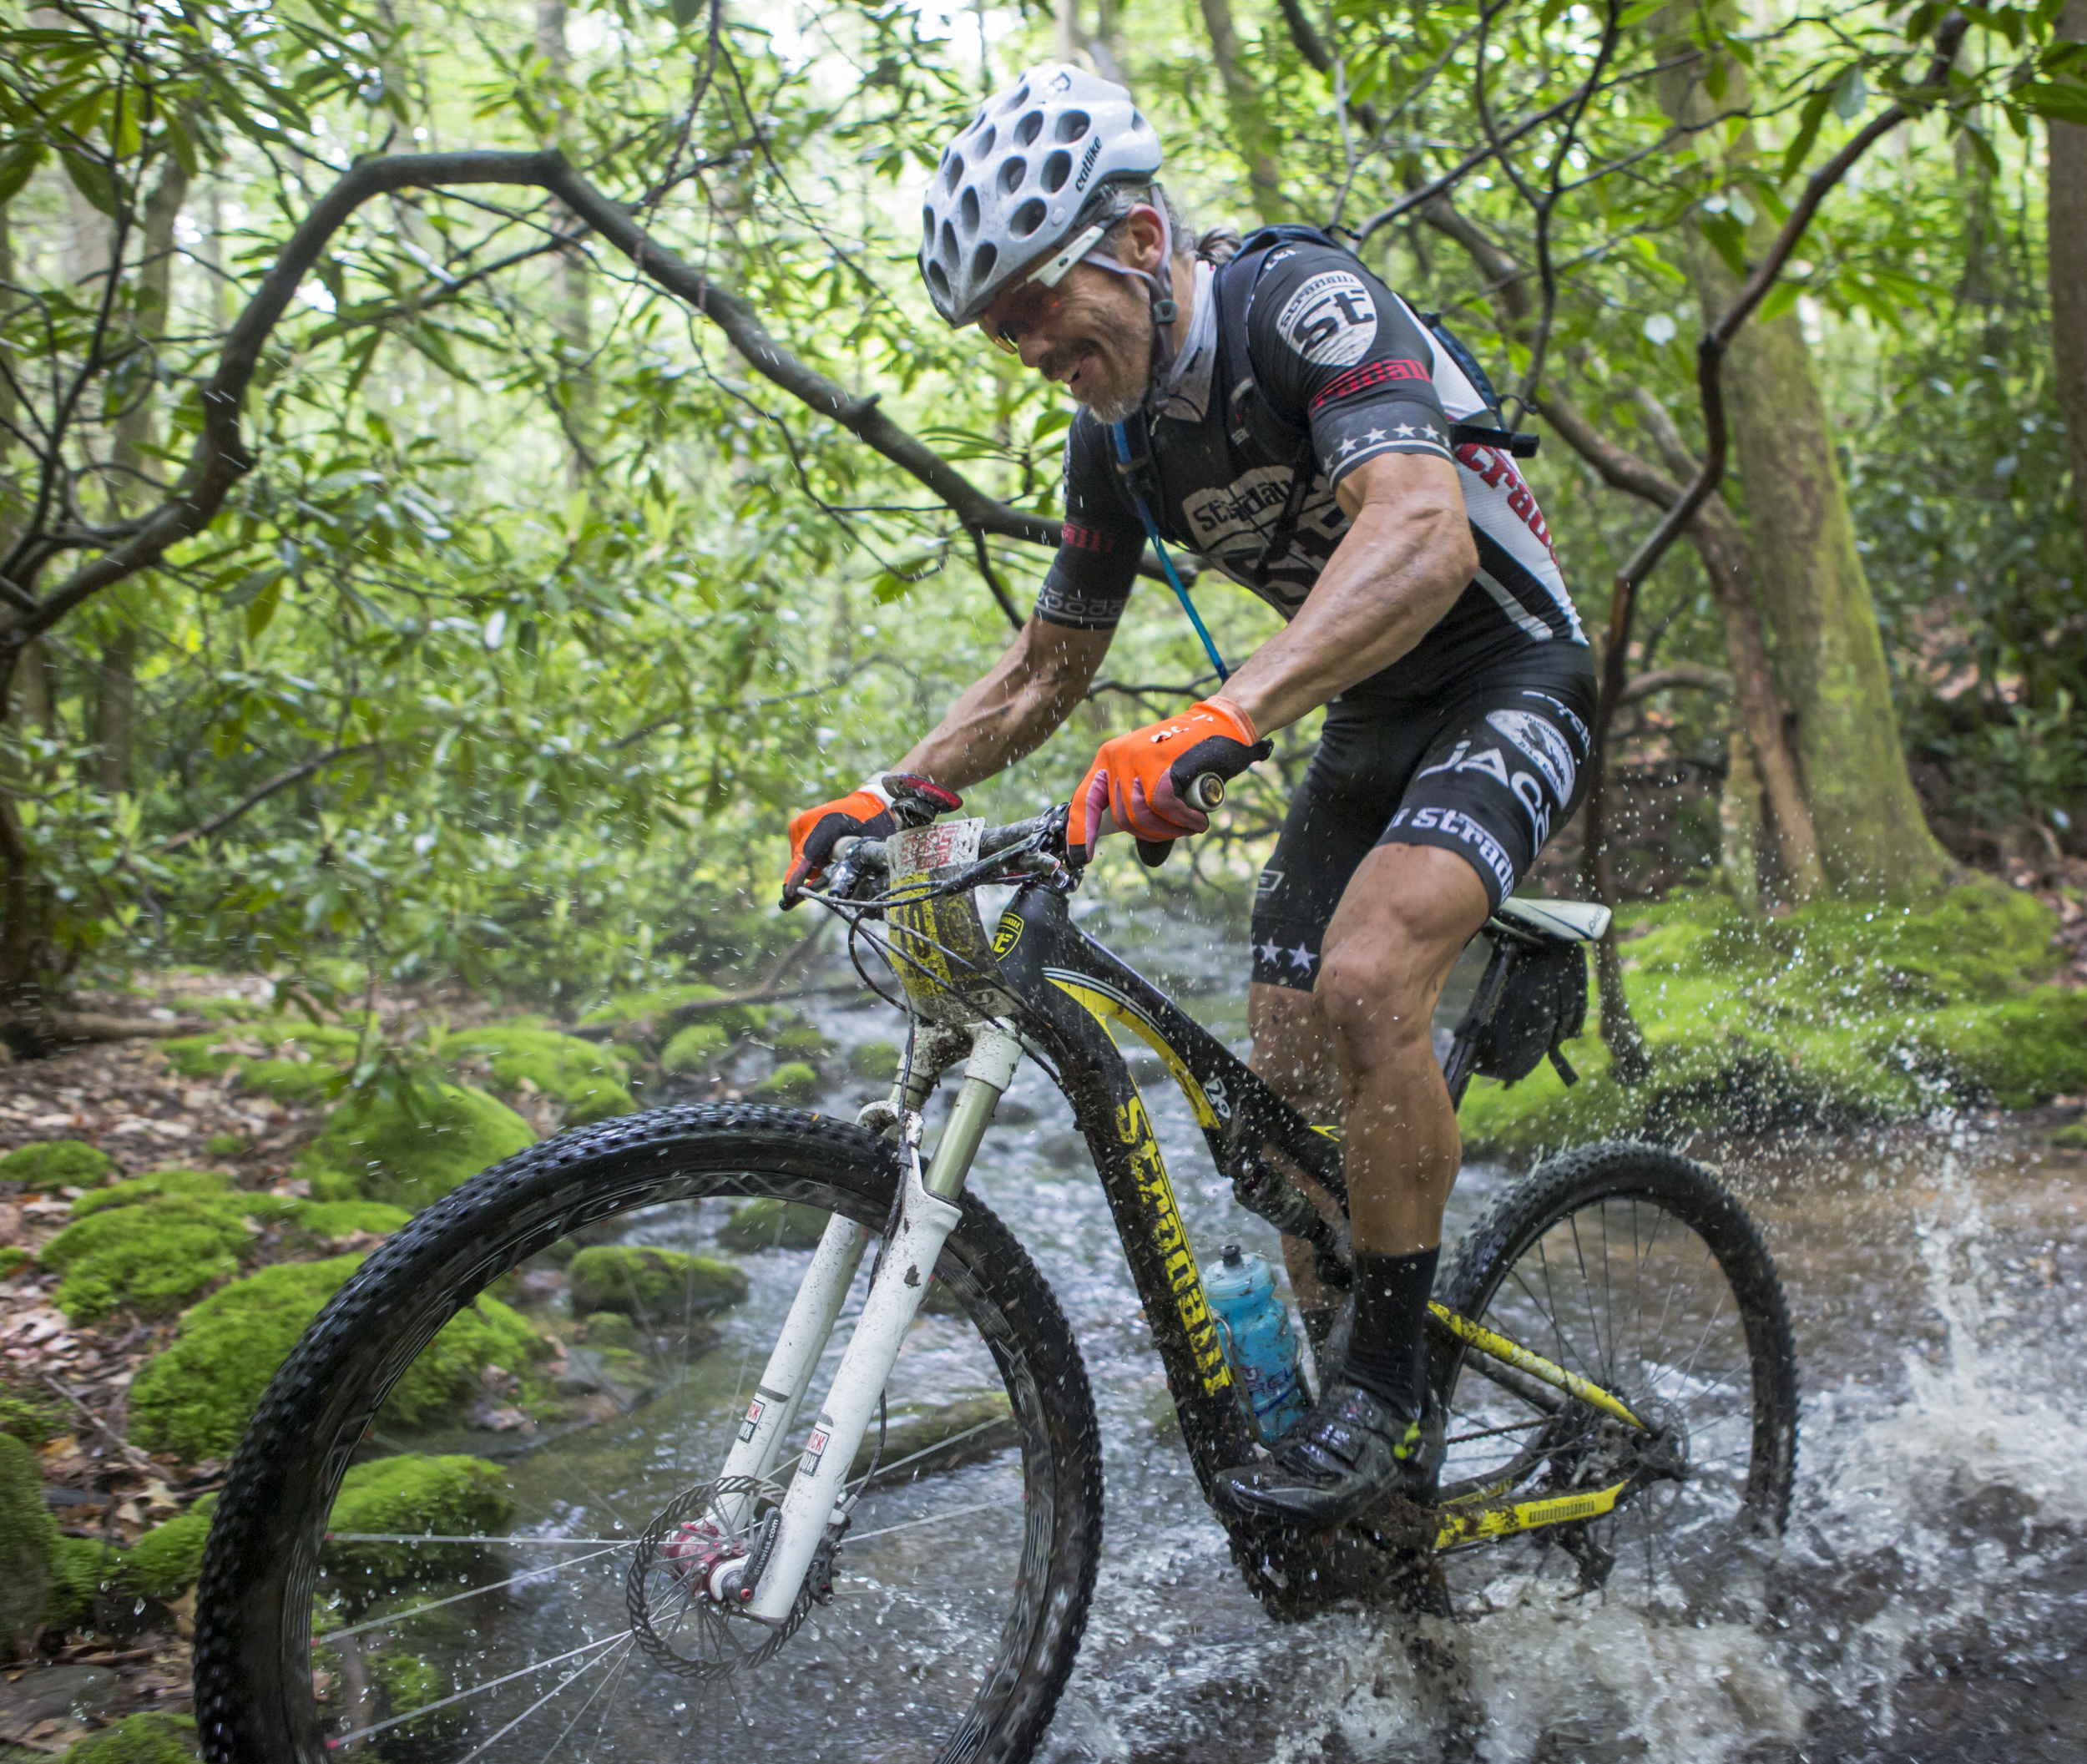 Bob McCarty of the Stradalli team powers through a stream crossing on the Lingle Valley trail during the final stage of the Tran-Sylvania Epic Mountain Bike Ride in Rothrock State Forest on Friday, June 3, 2016.